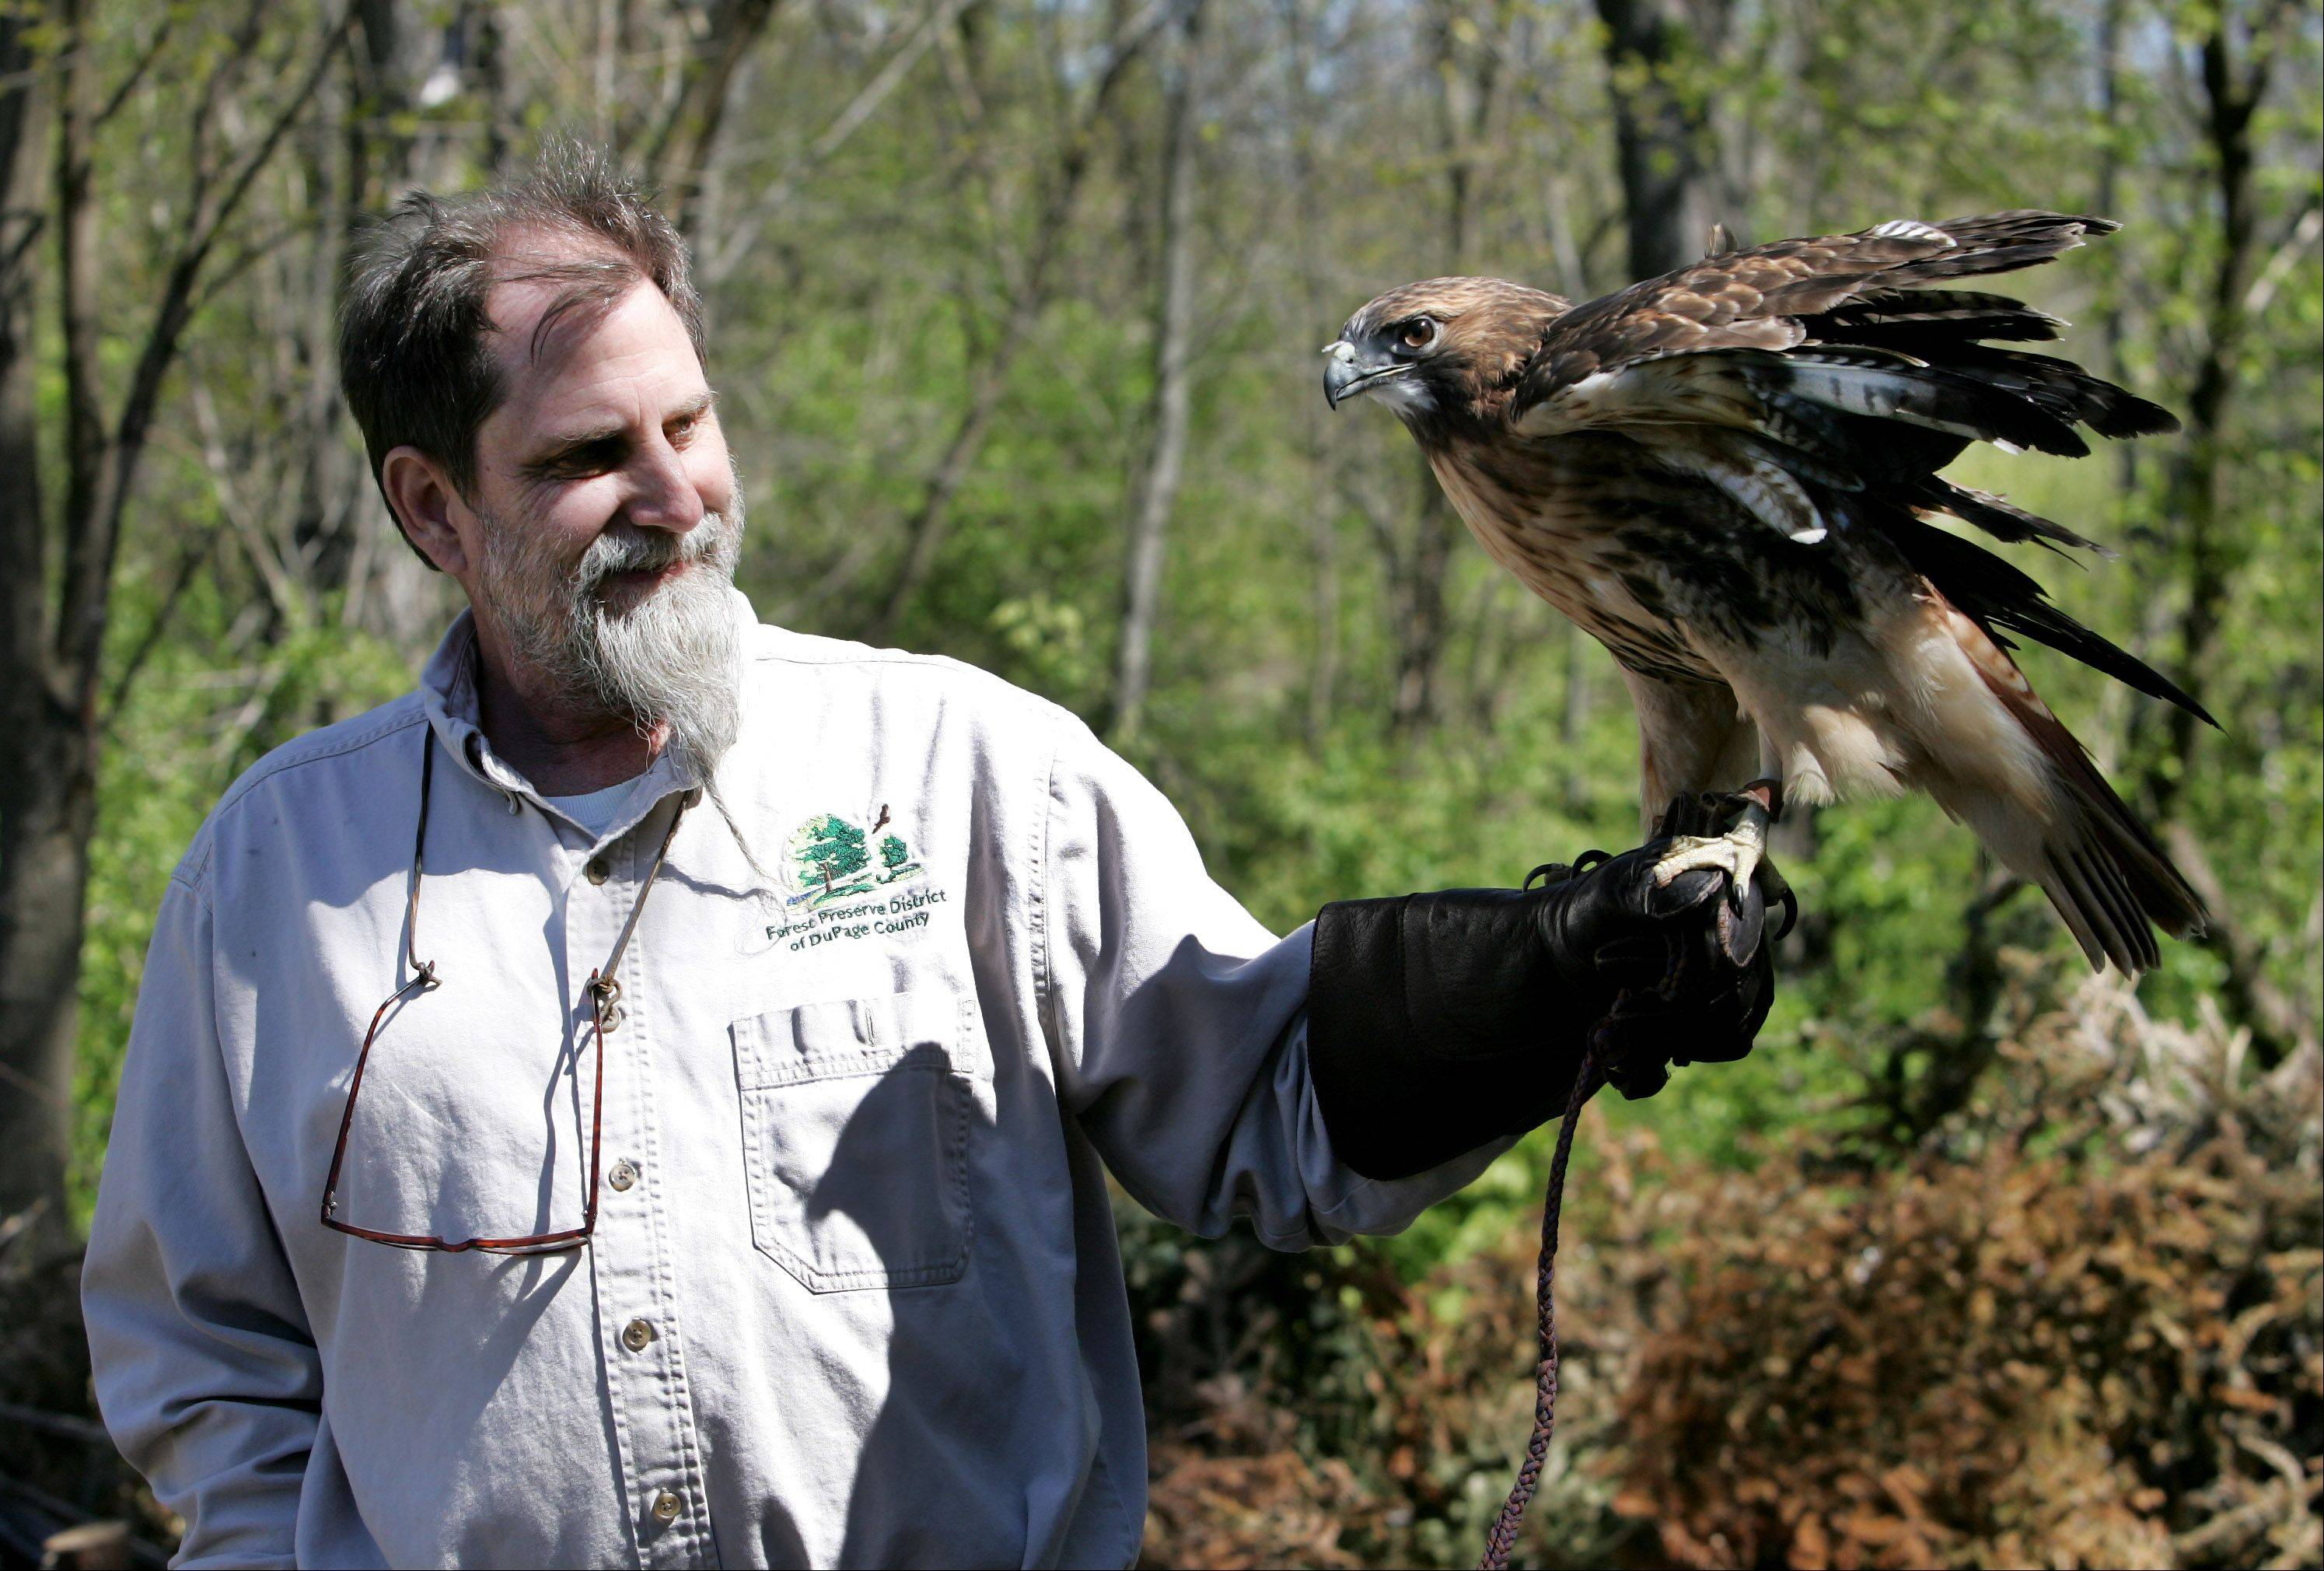 Willowbrook naturalist 'living the dream'